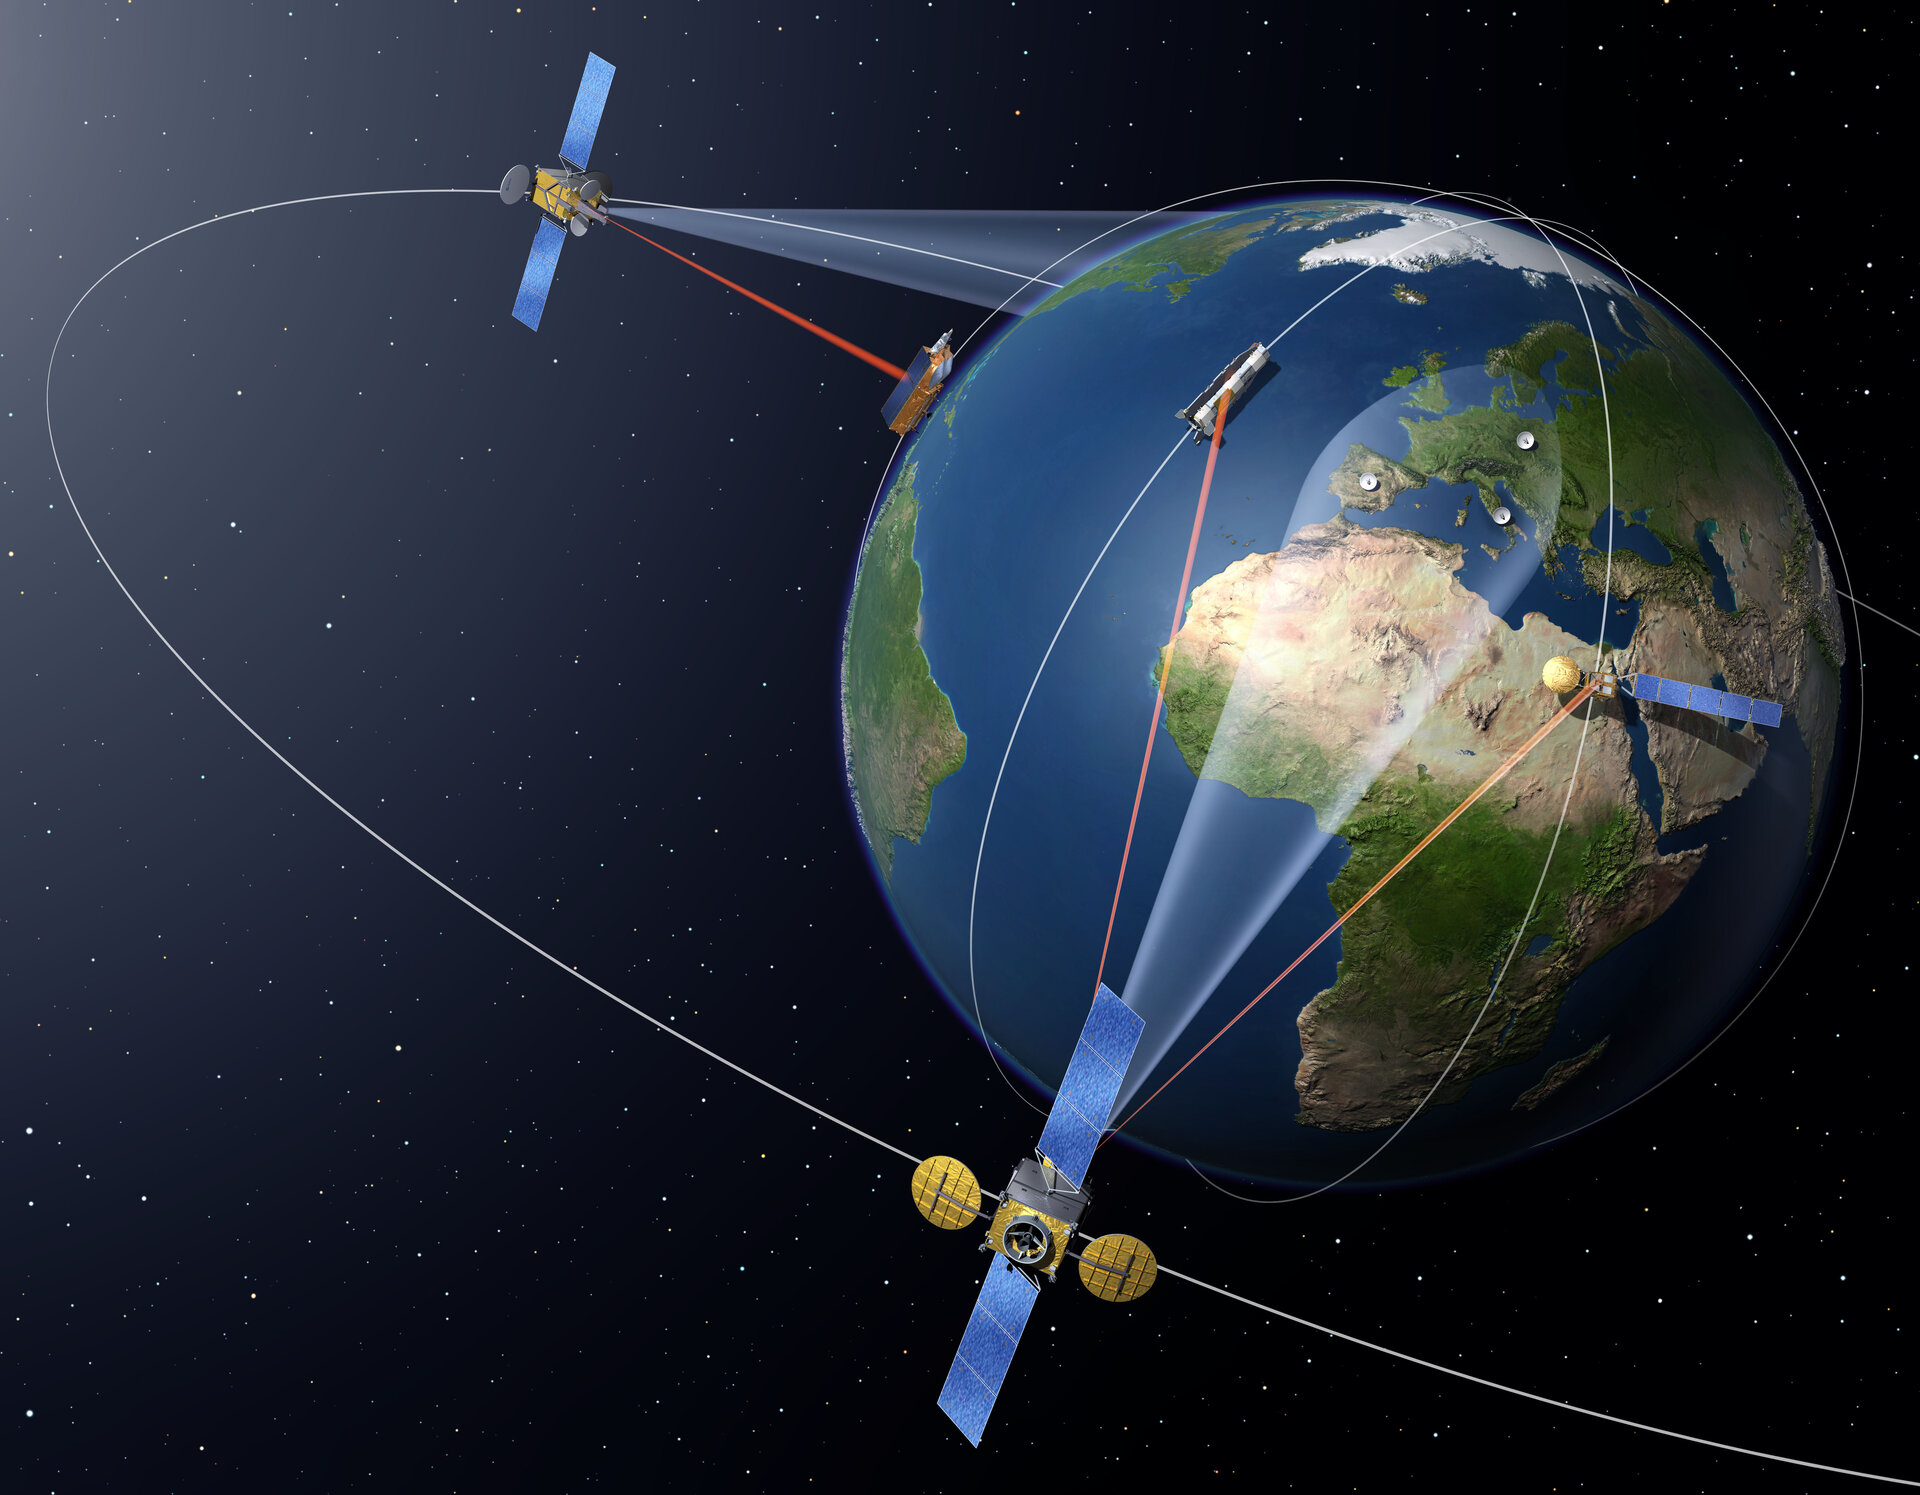 Artist impression of European Data Relay Satellite (EDRS) system